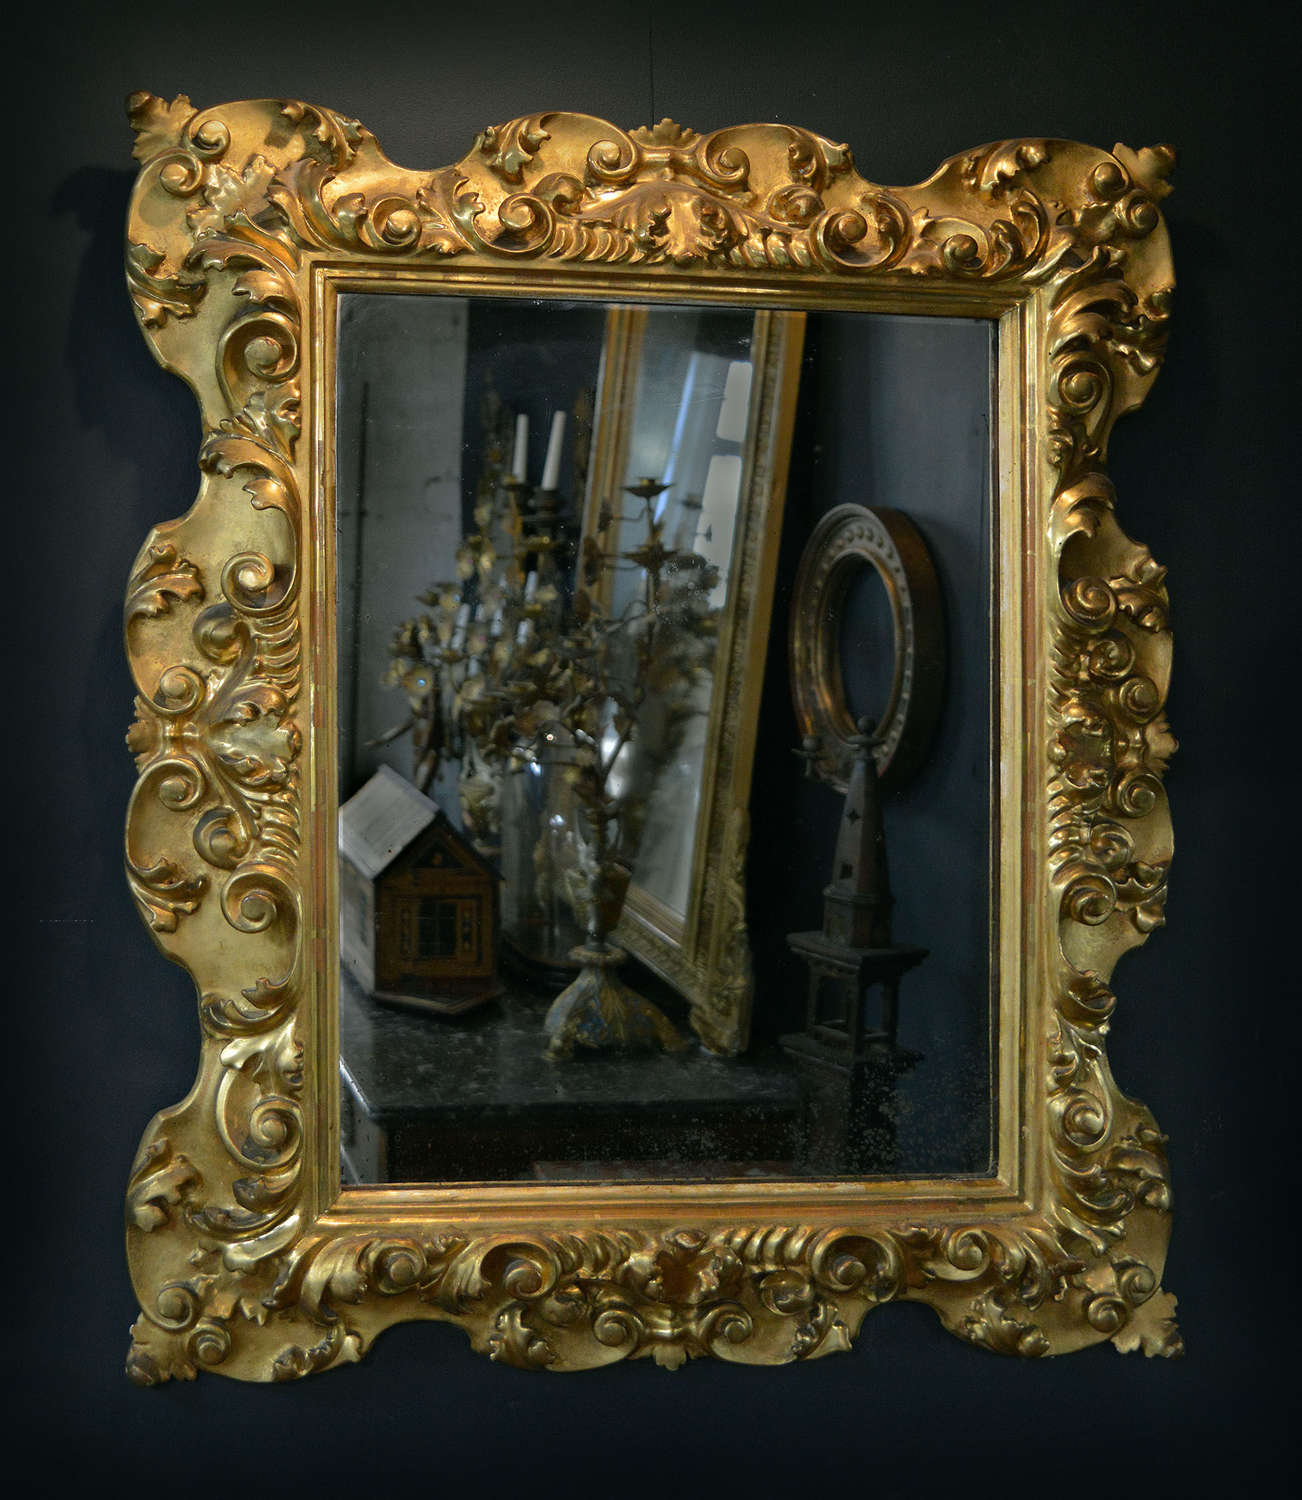 19th Century Italian Florentine Gilt-wood Mirror